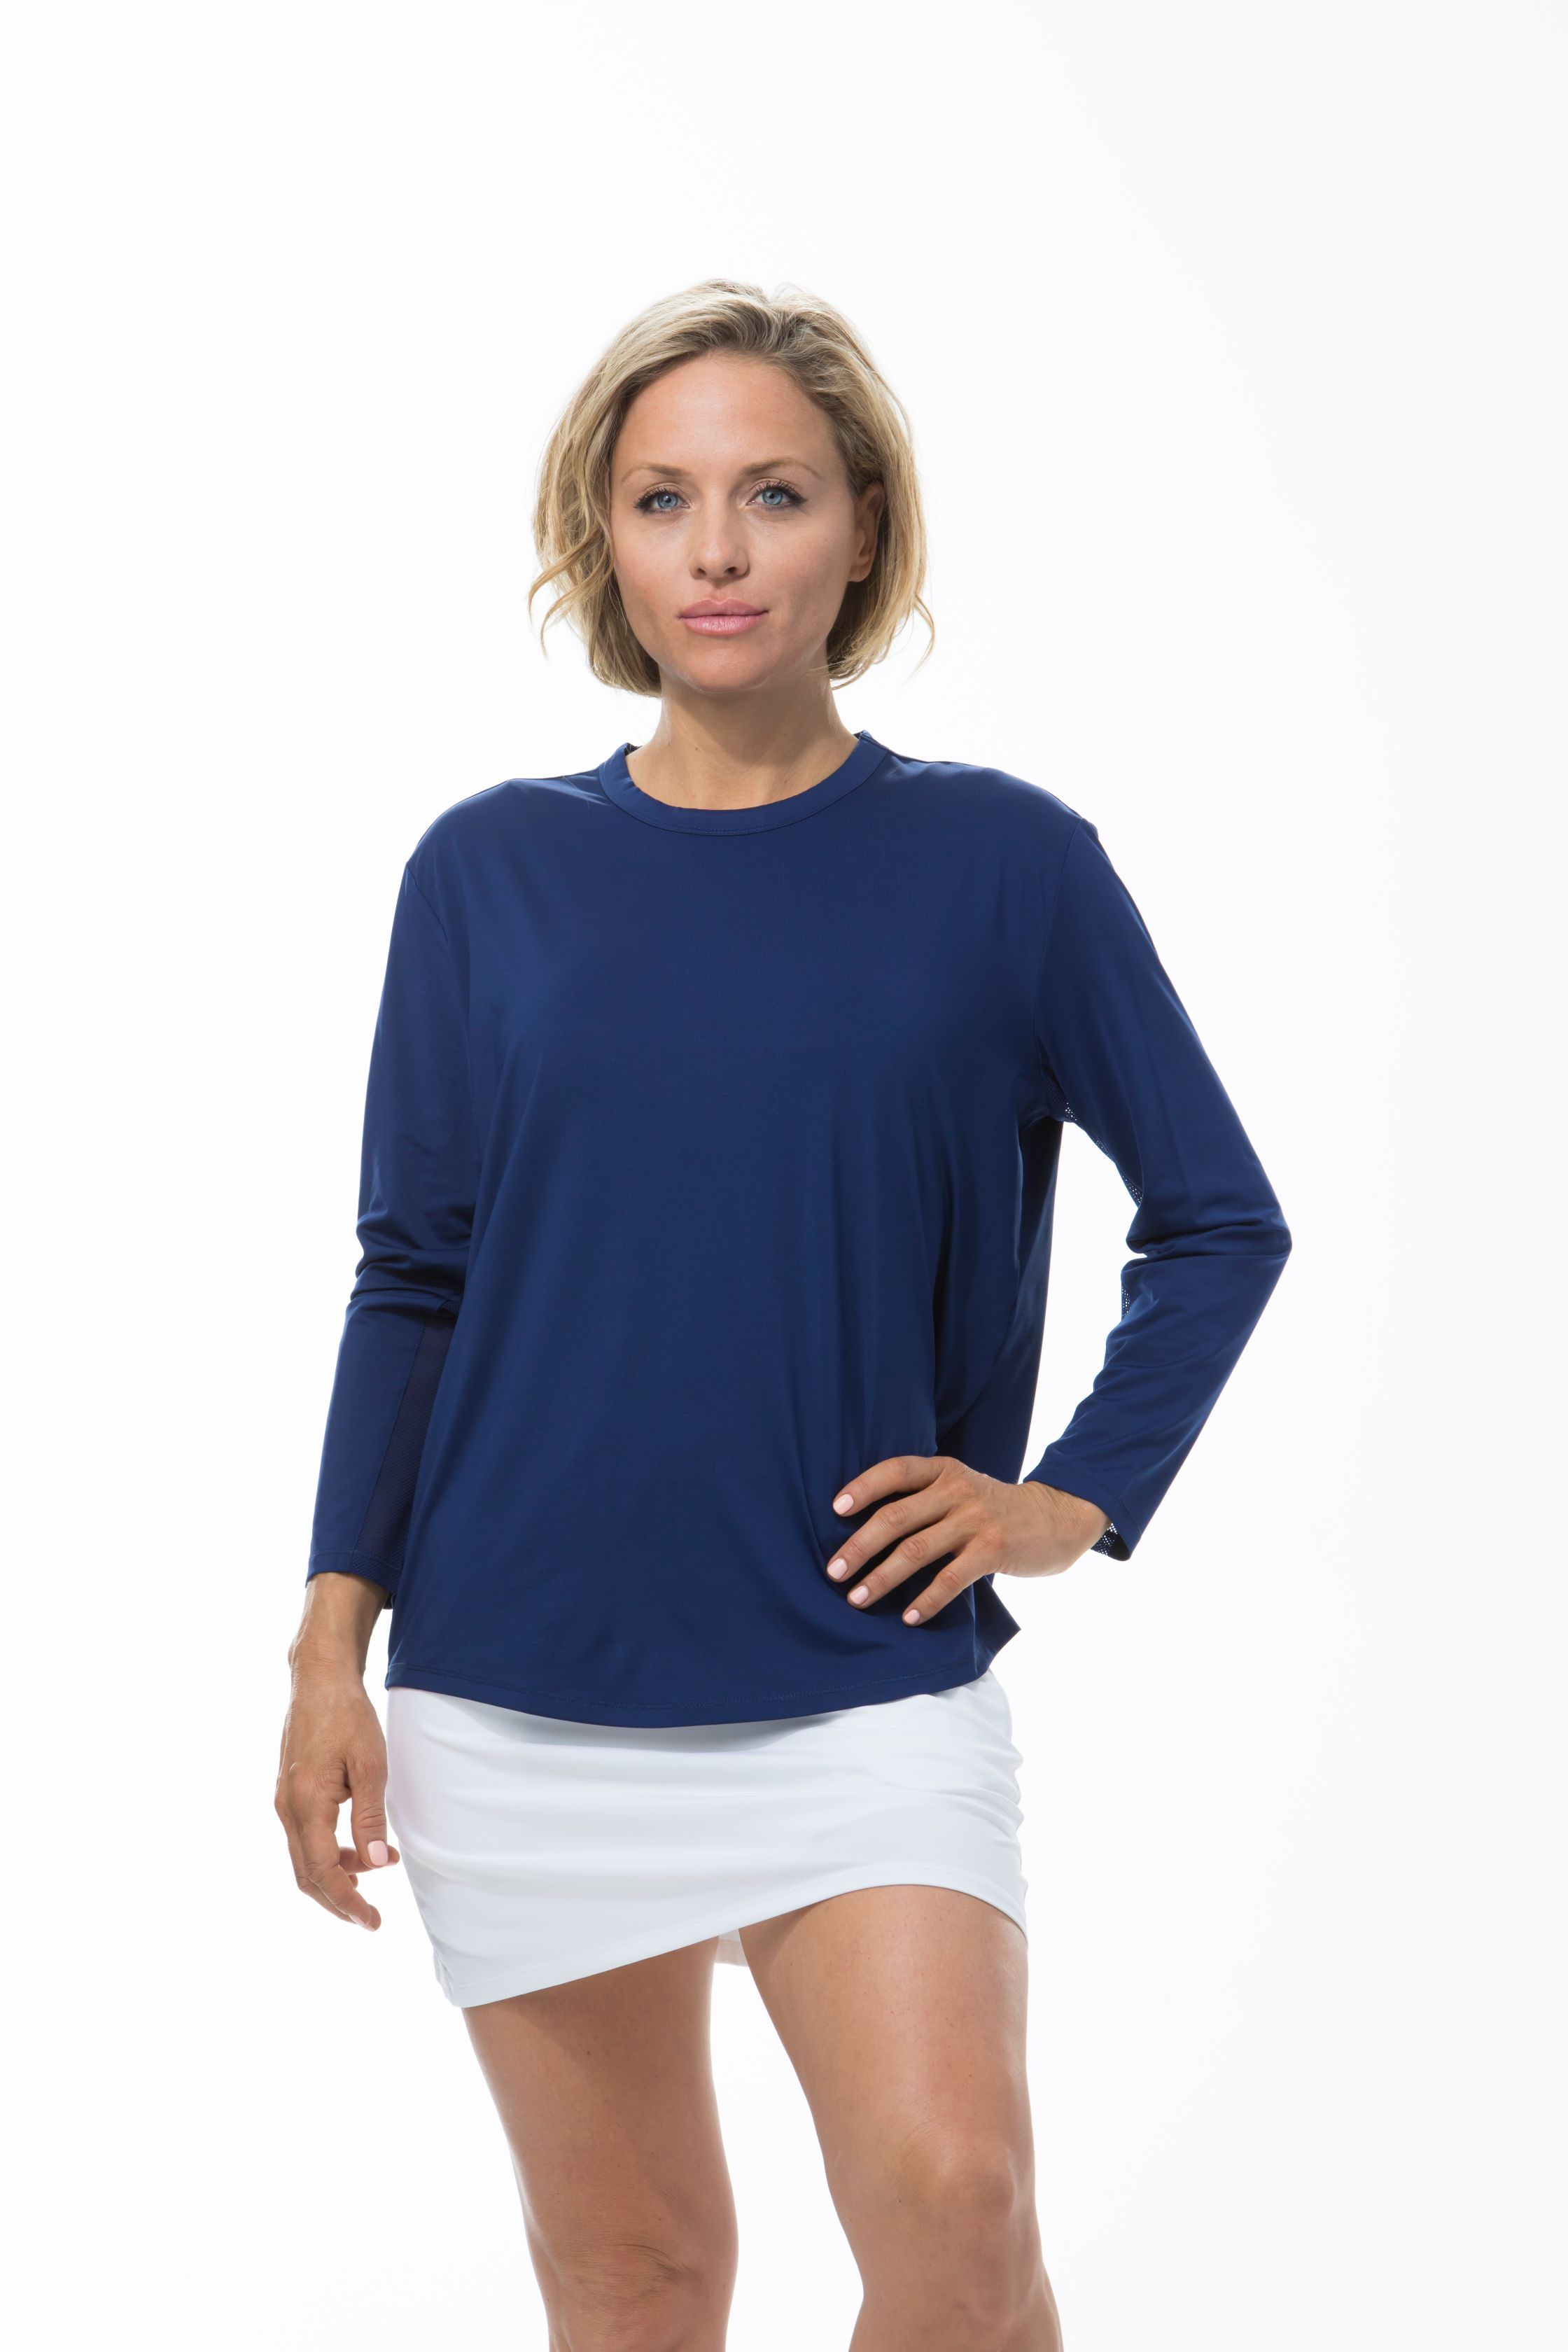 SANSOLEIL SUNGLOW RELAXED TEE. NAVY BLUE. 900730